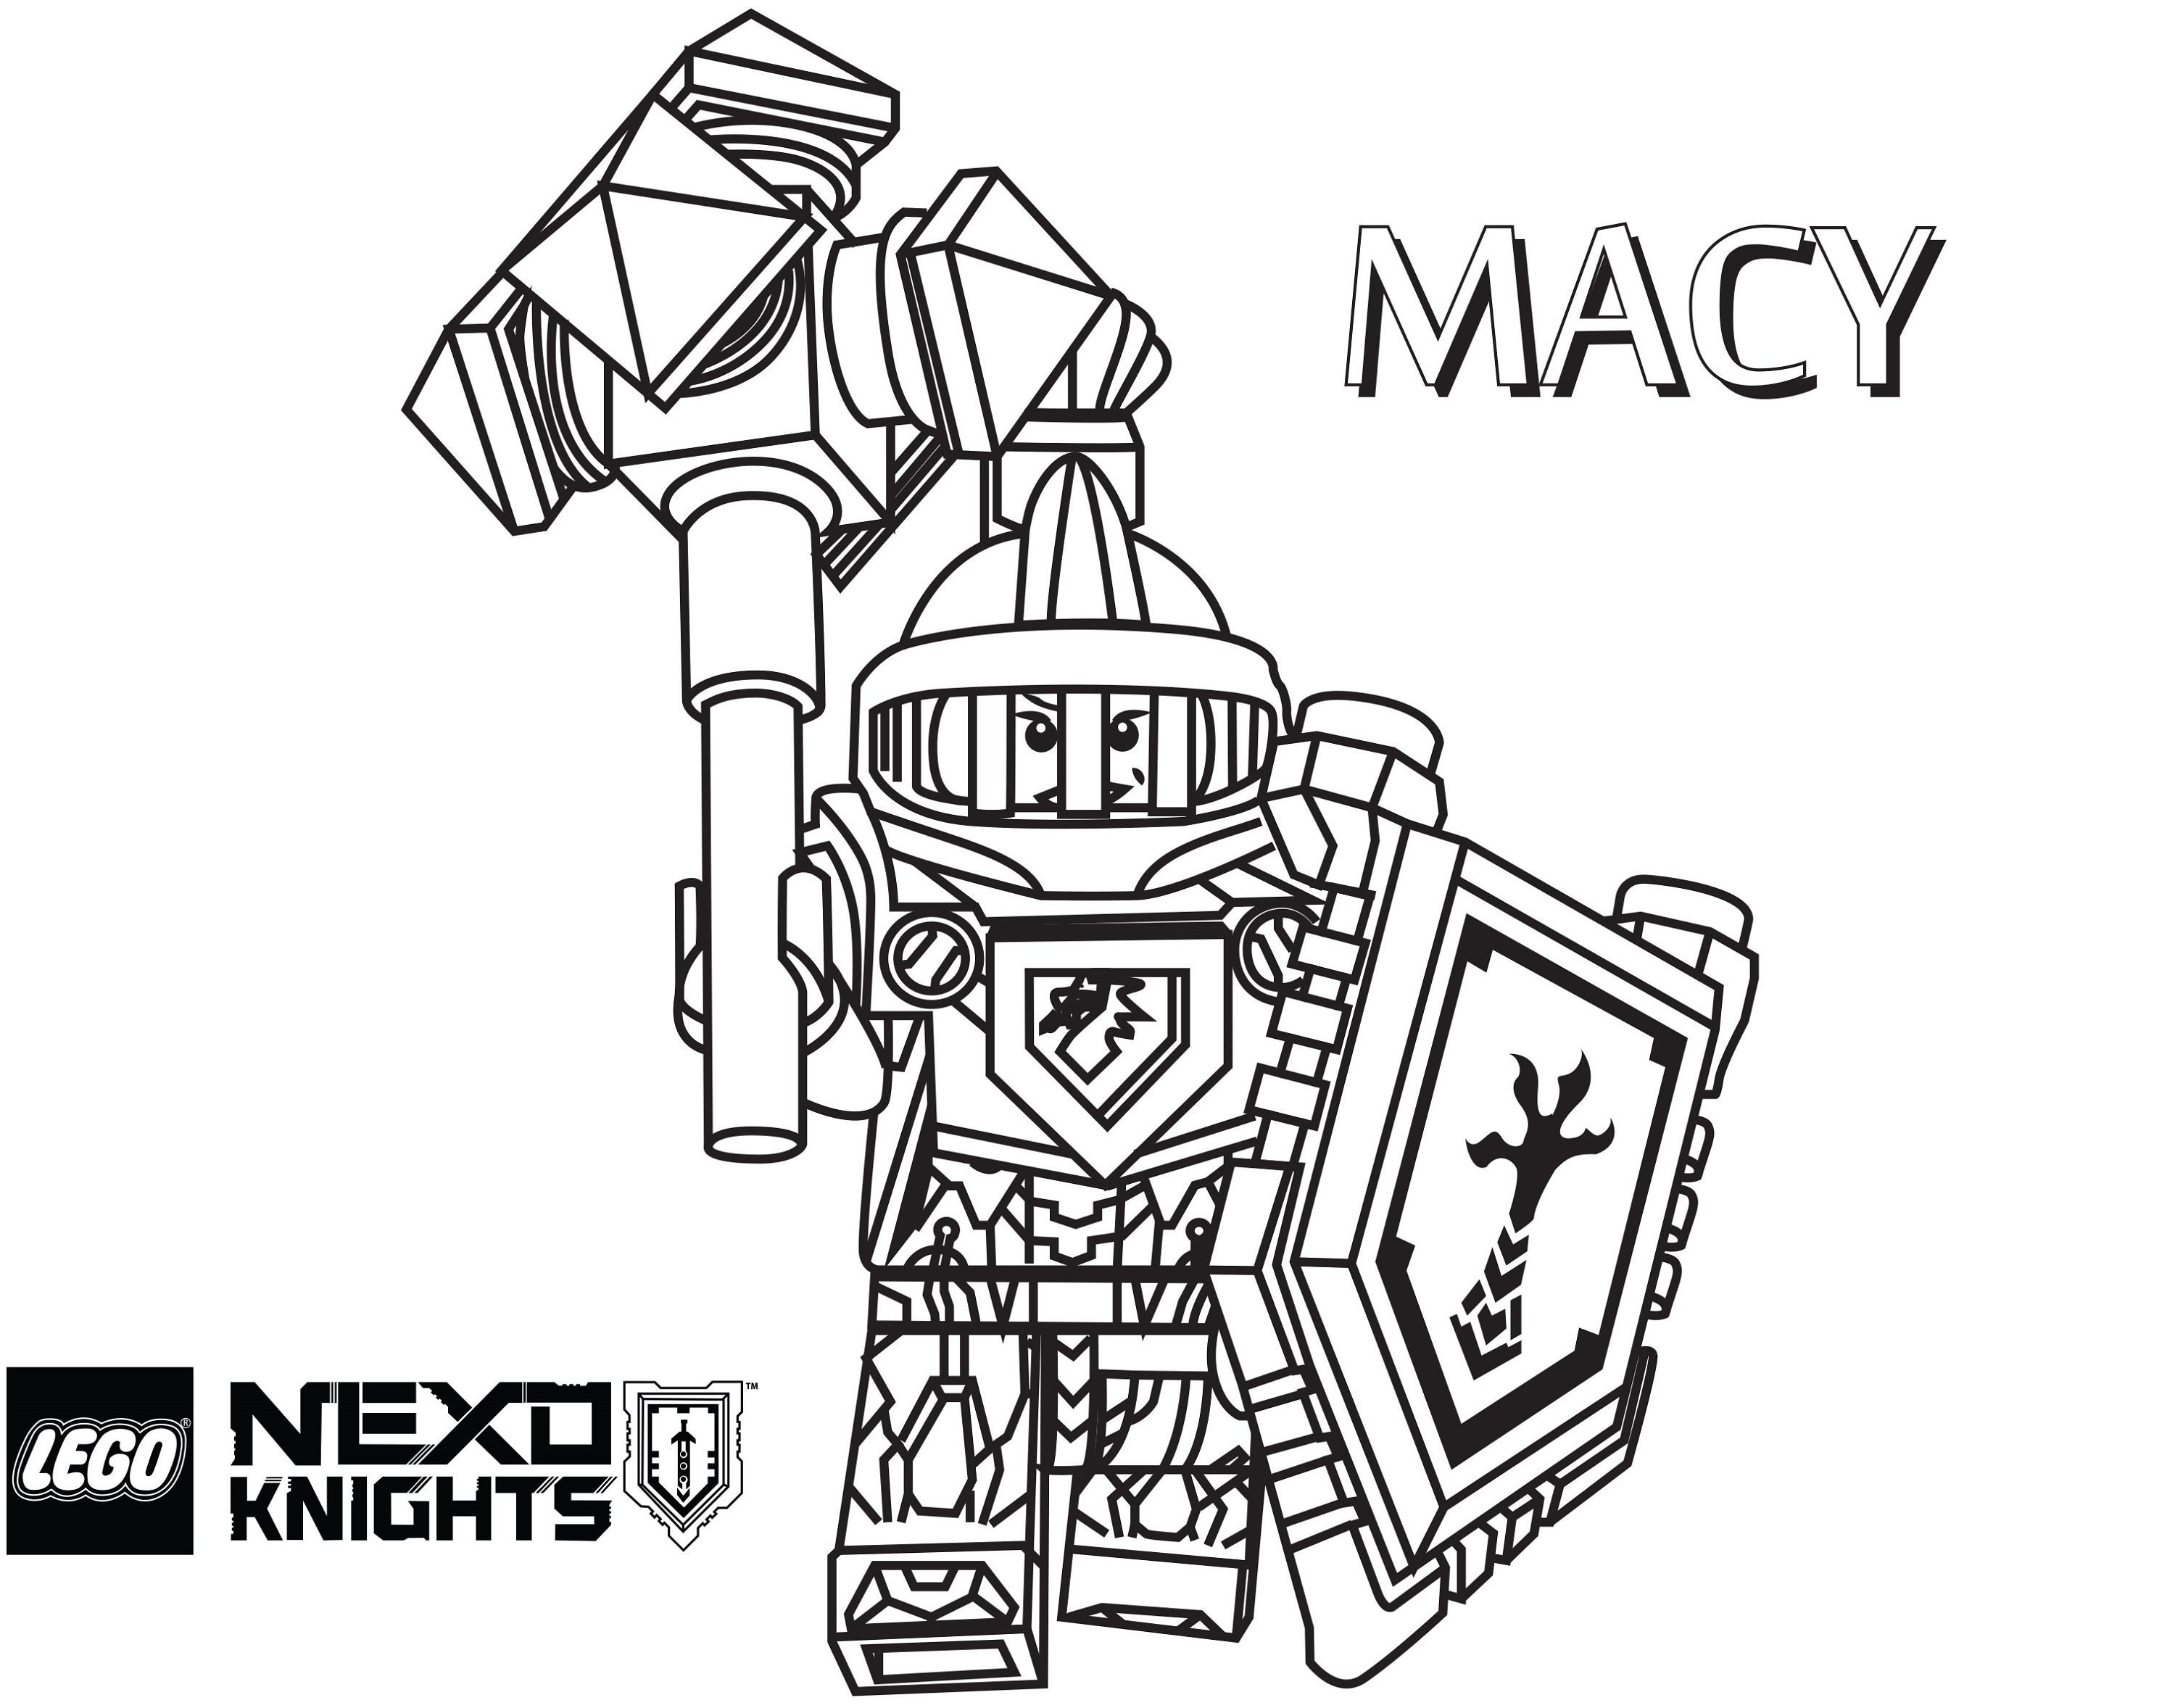 Lego Nexo Knights Coloring Pages Macy